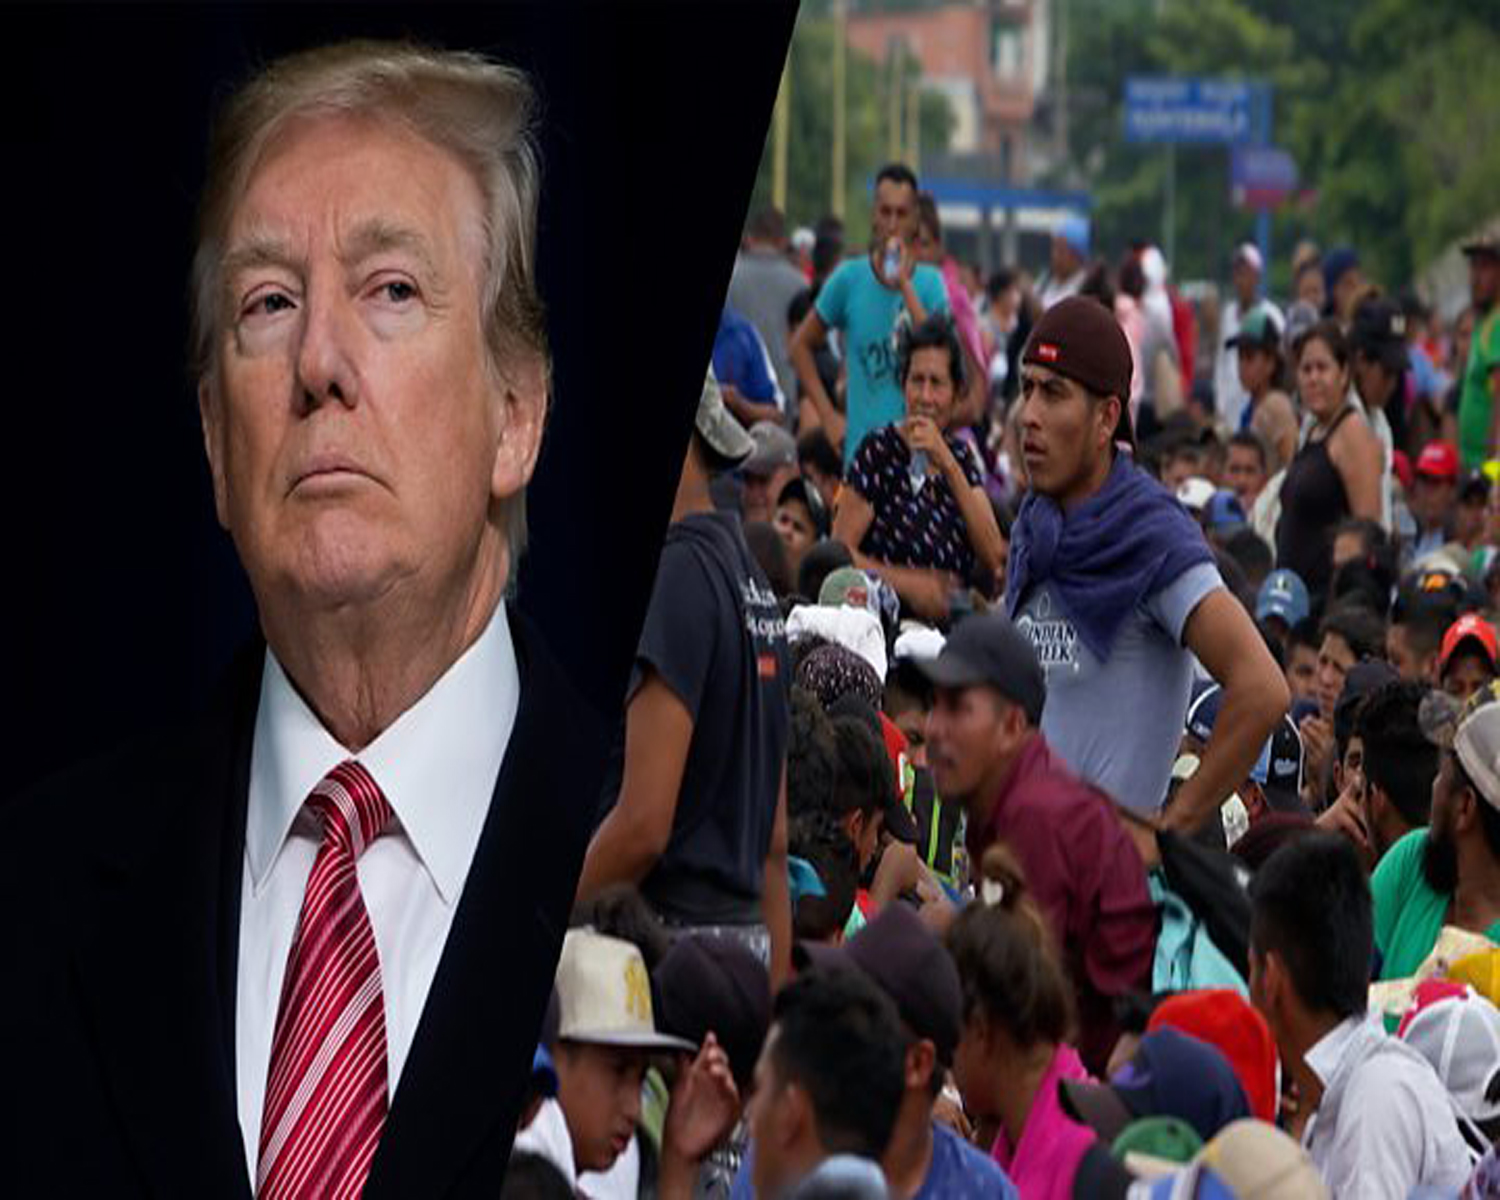 Trump administration has made a lot of asylum-seekers wait for their hearings in Mexico and this has lead to a fall in the illegal crossings at the borders